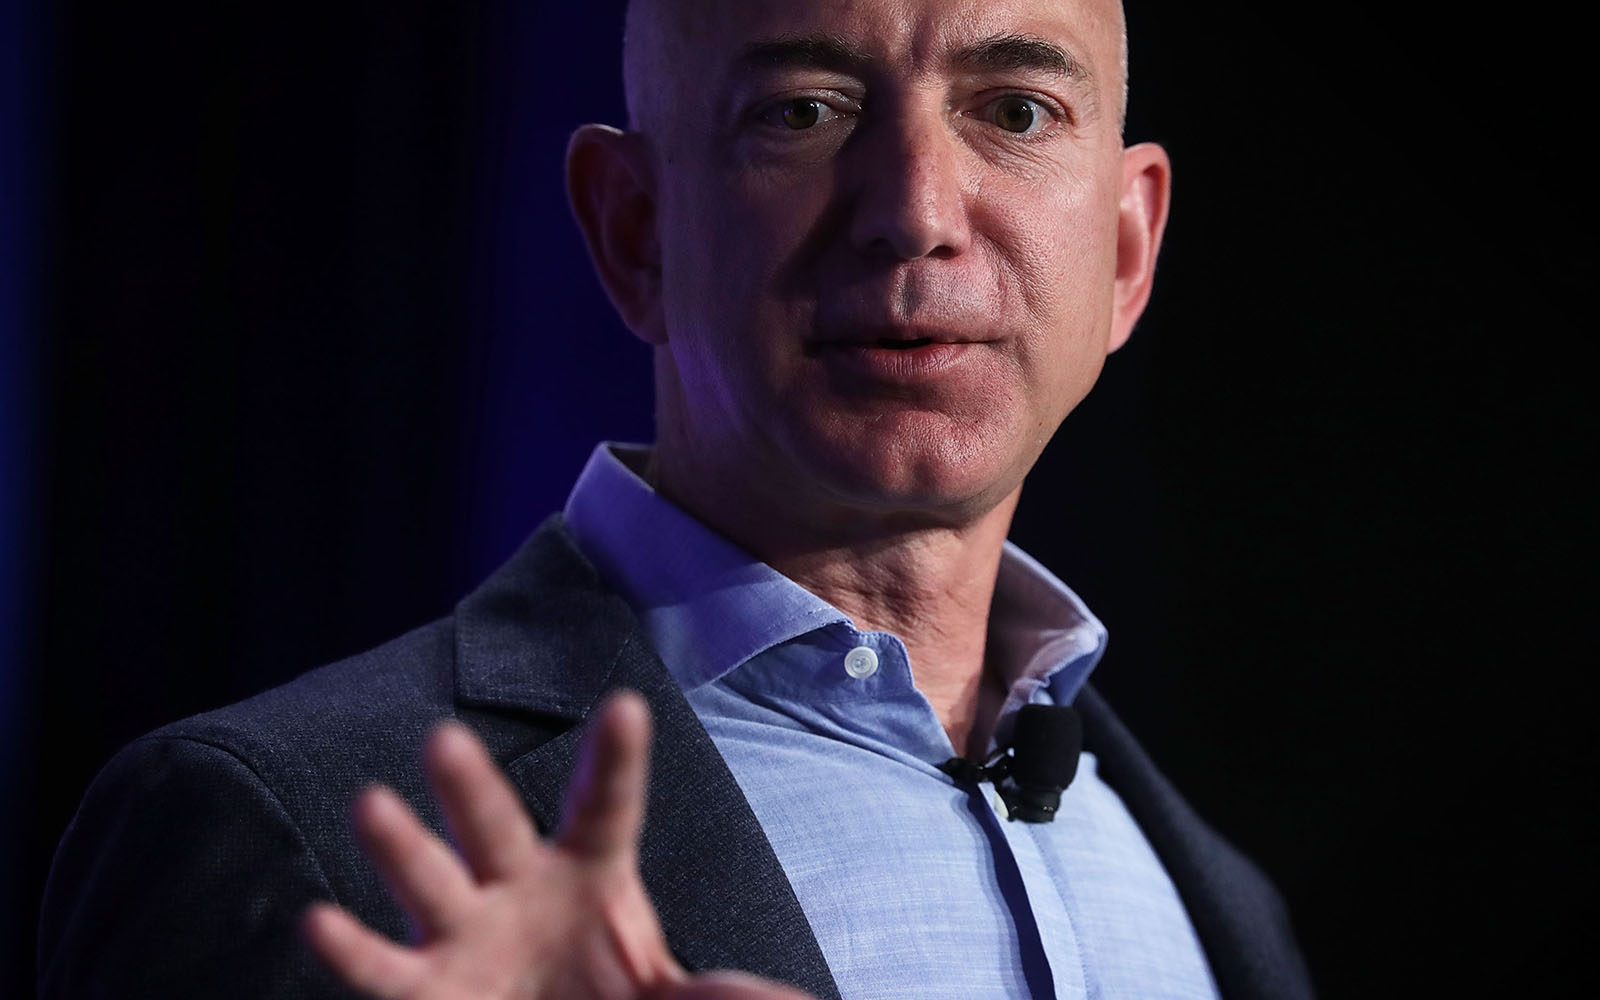 In the wake of the recent announcement by the CEOs of Amazon, Berkshire Hathway, and JPMorgan Chase, the health care industry is likely to rapidly promote innovation, says David Souder of the School of Business. (Alex Wong/Getty Images)